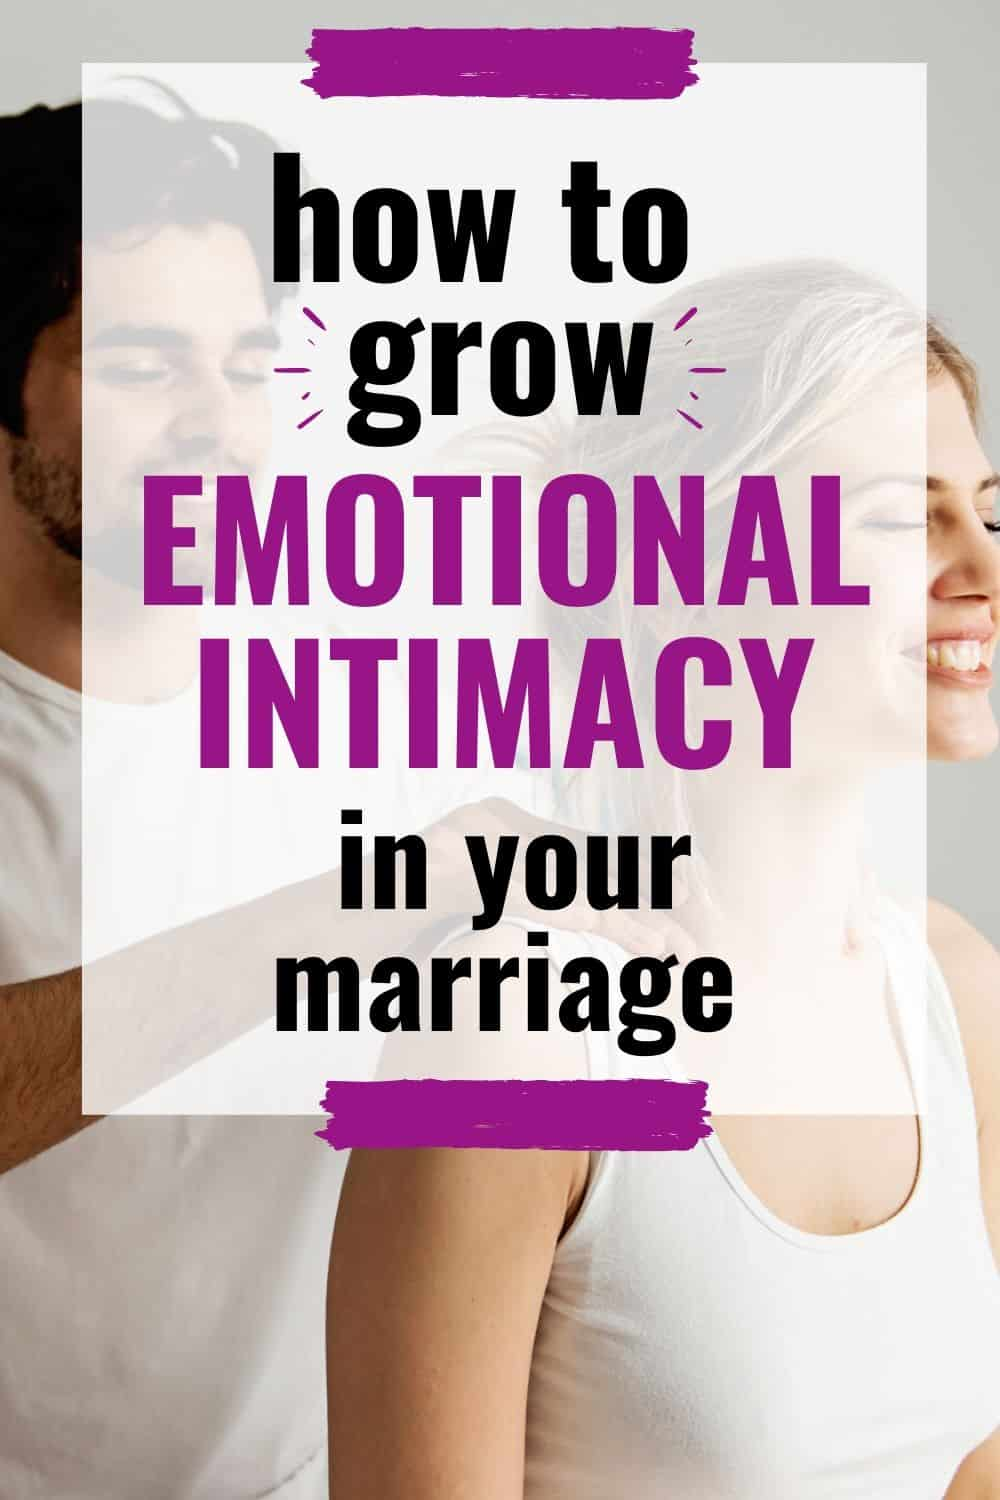 couple massaging each other, practicing how to grow in emotional intimacy in their marriage